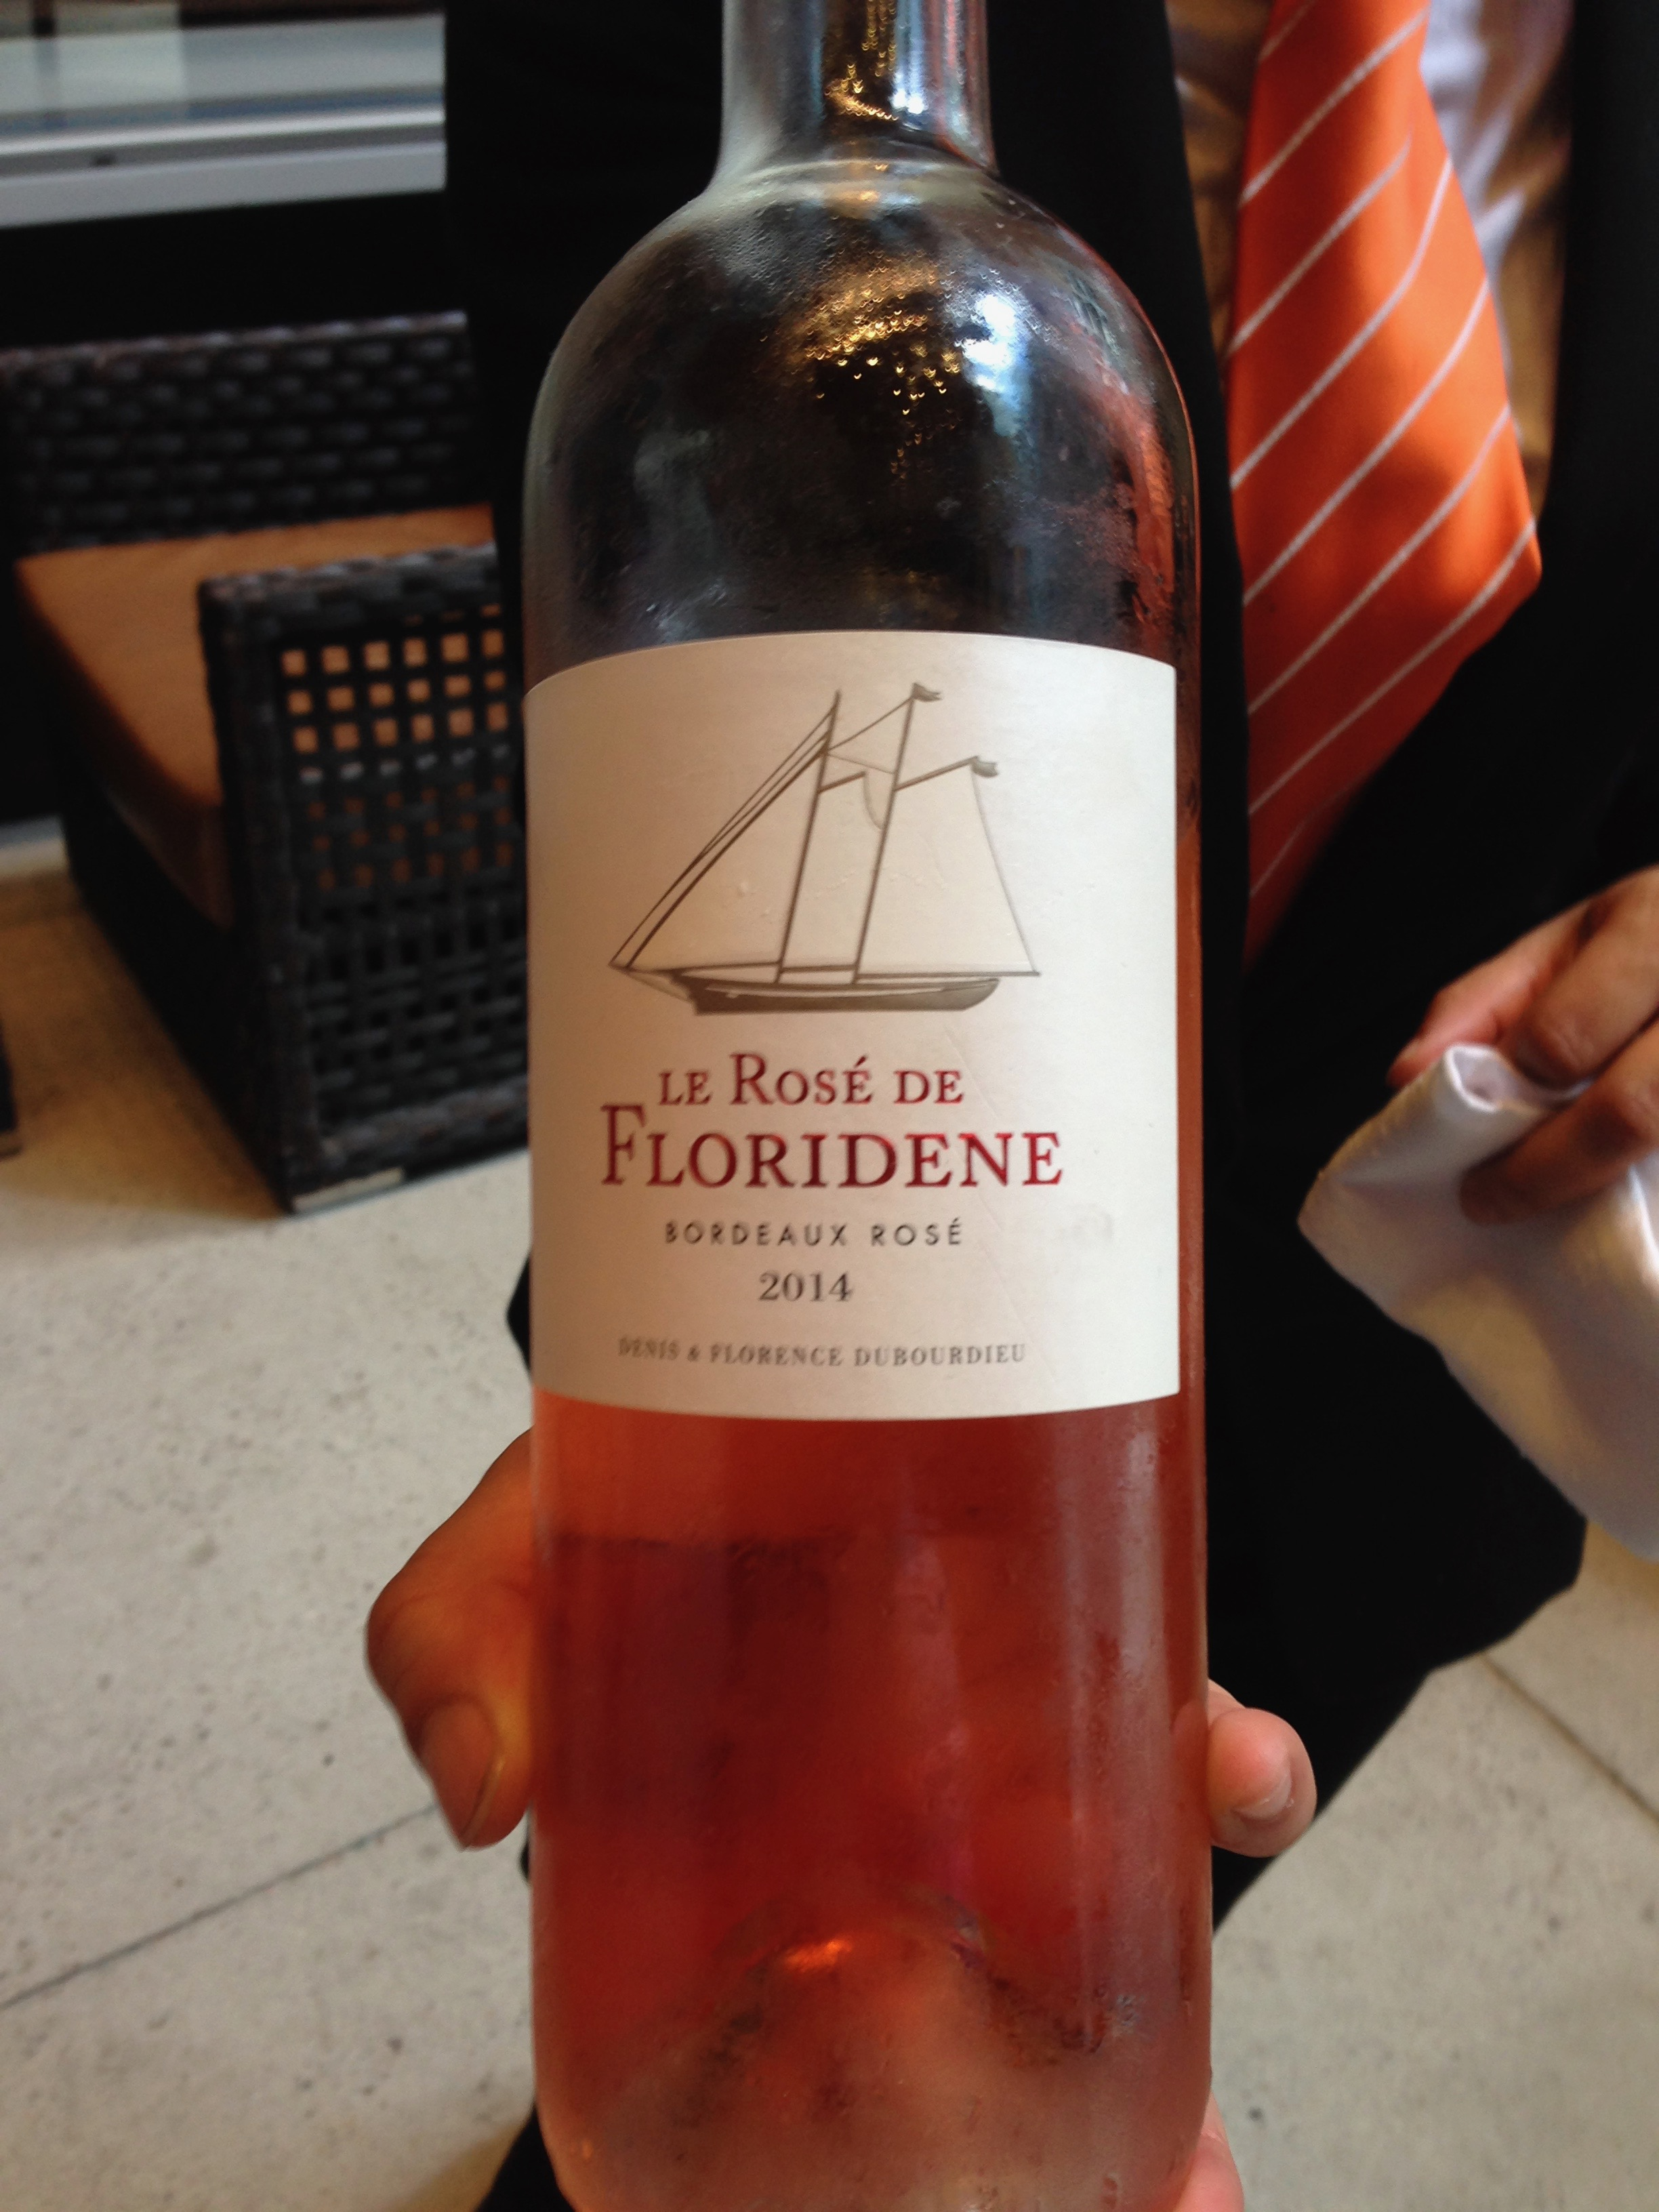 It's always time for PINK  http://www.reuters.com/article/wine-ros-idUSL2N0WJ24320150324